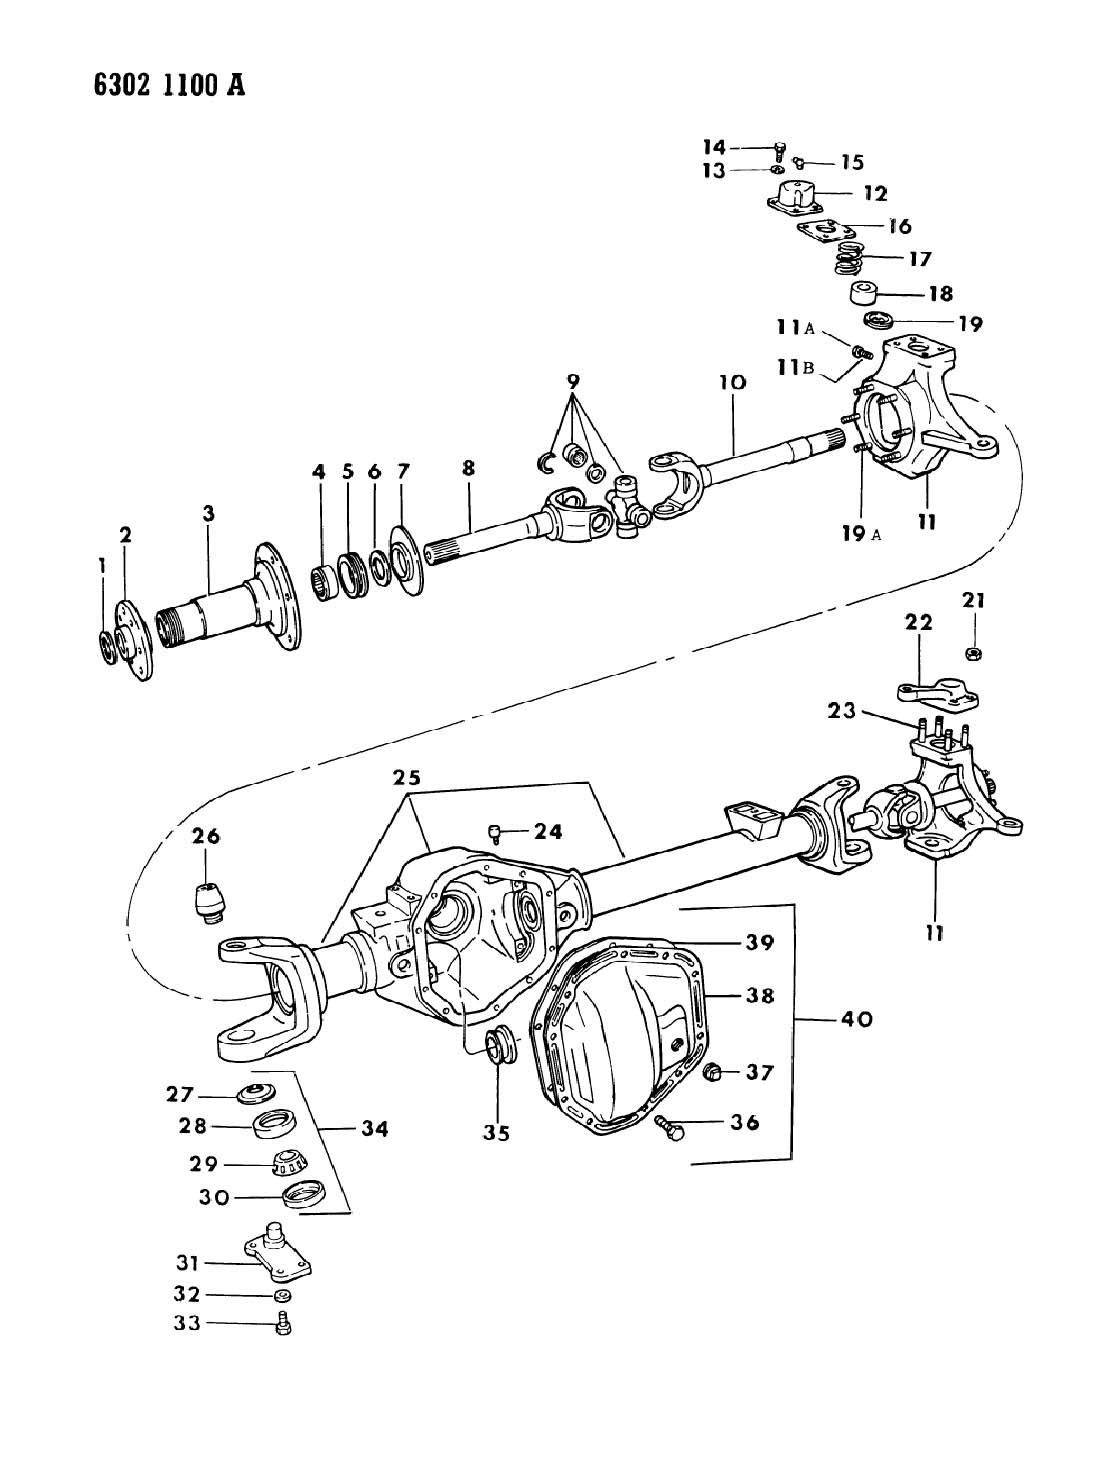 dodge dana 60 front axle parts diagram html